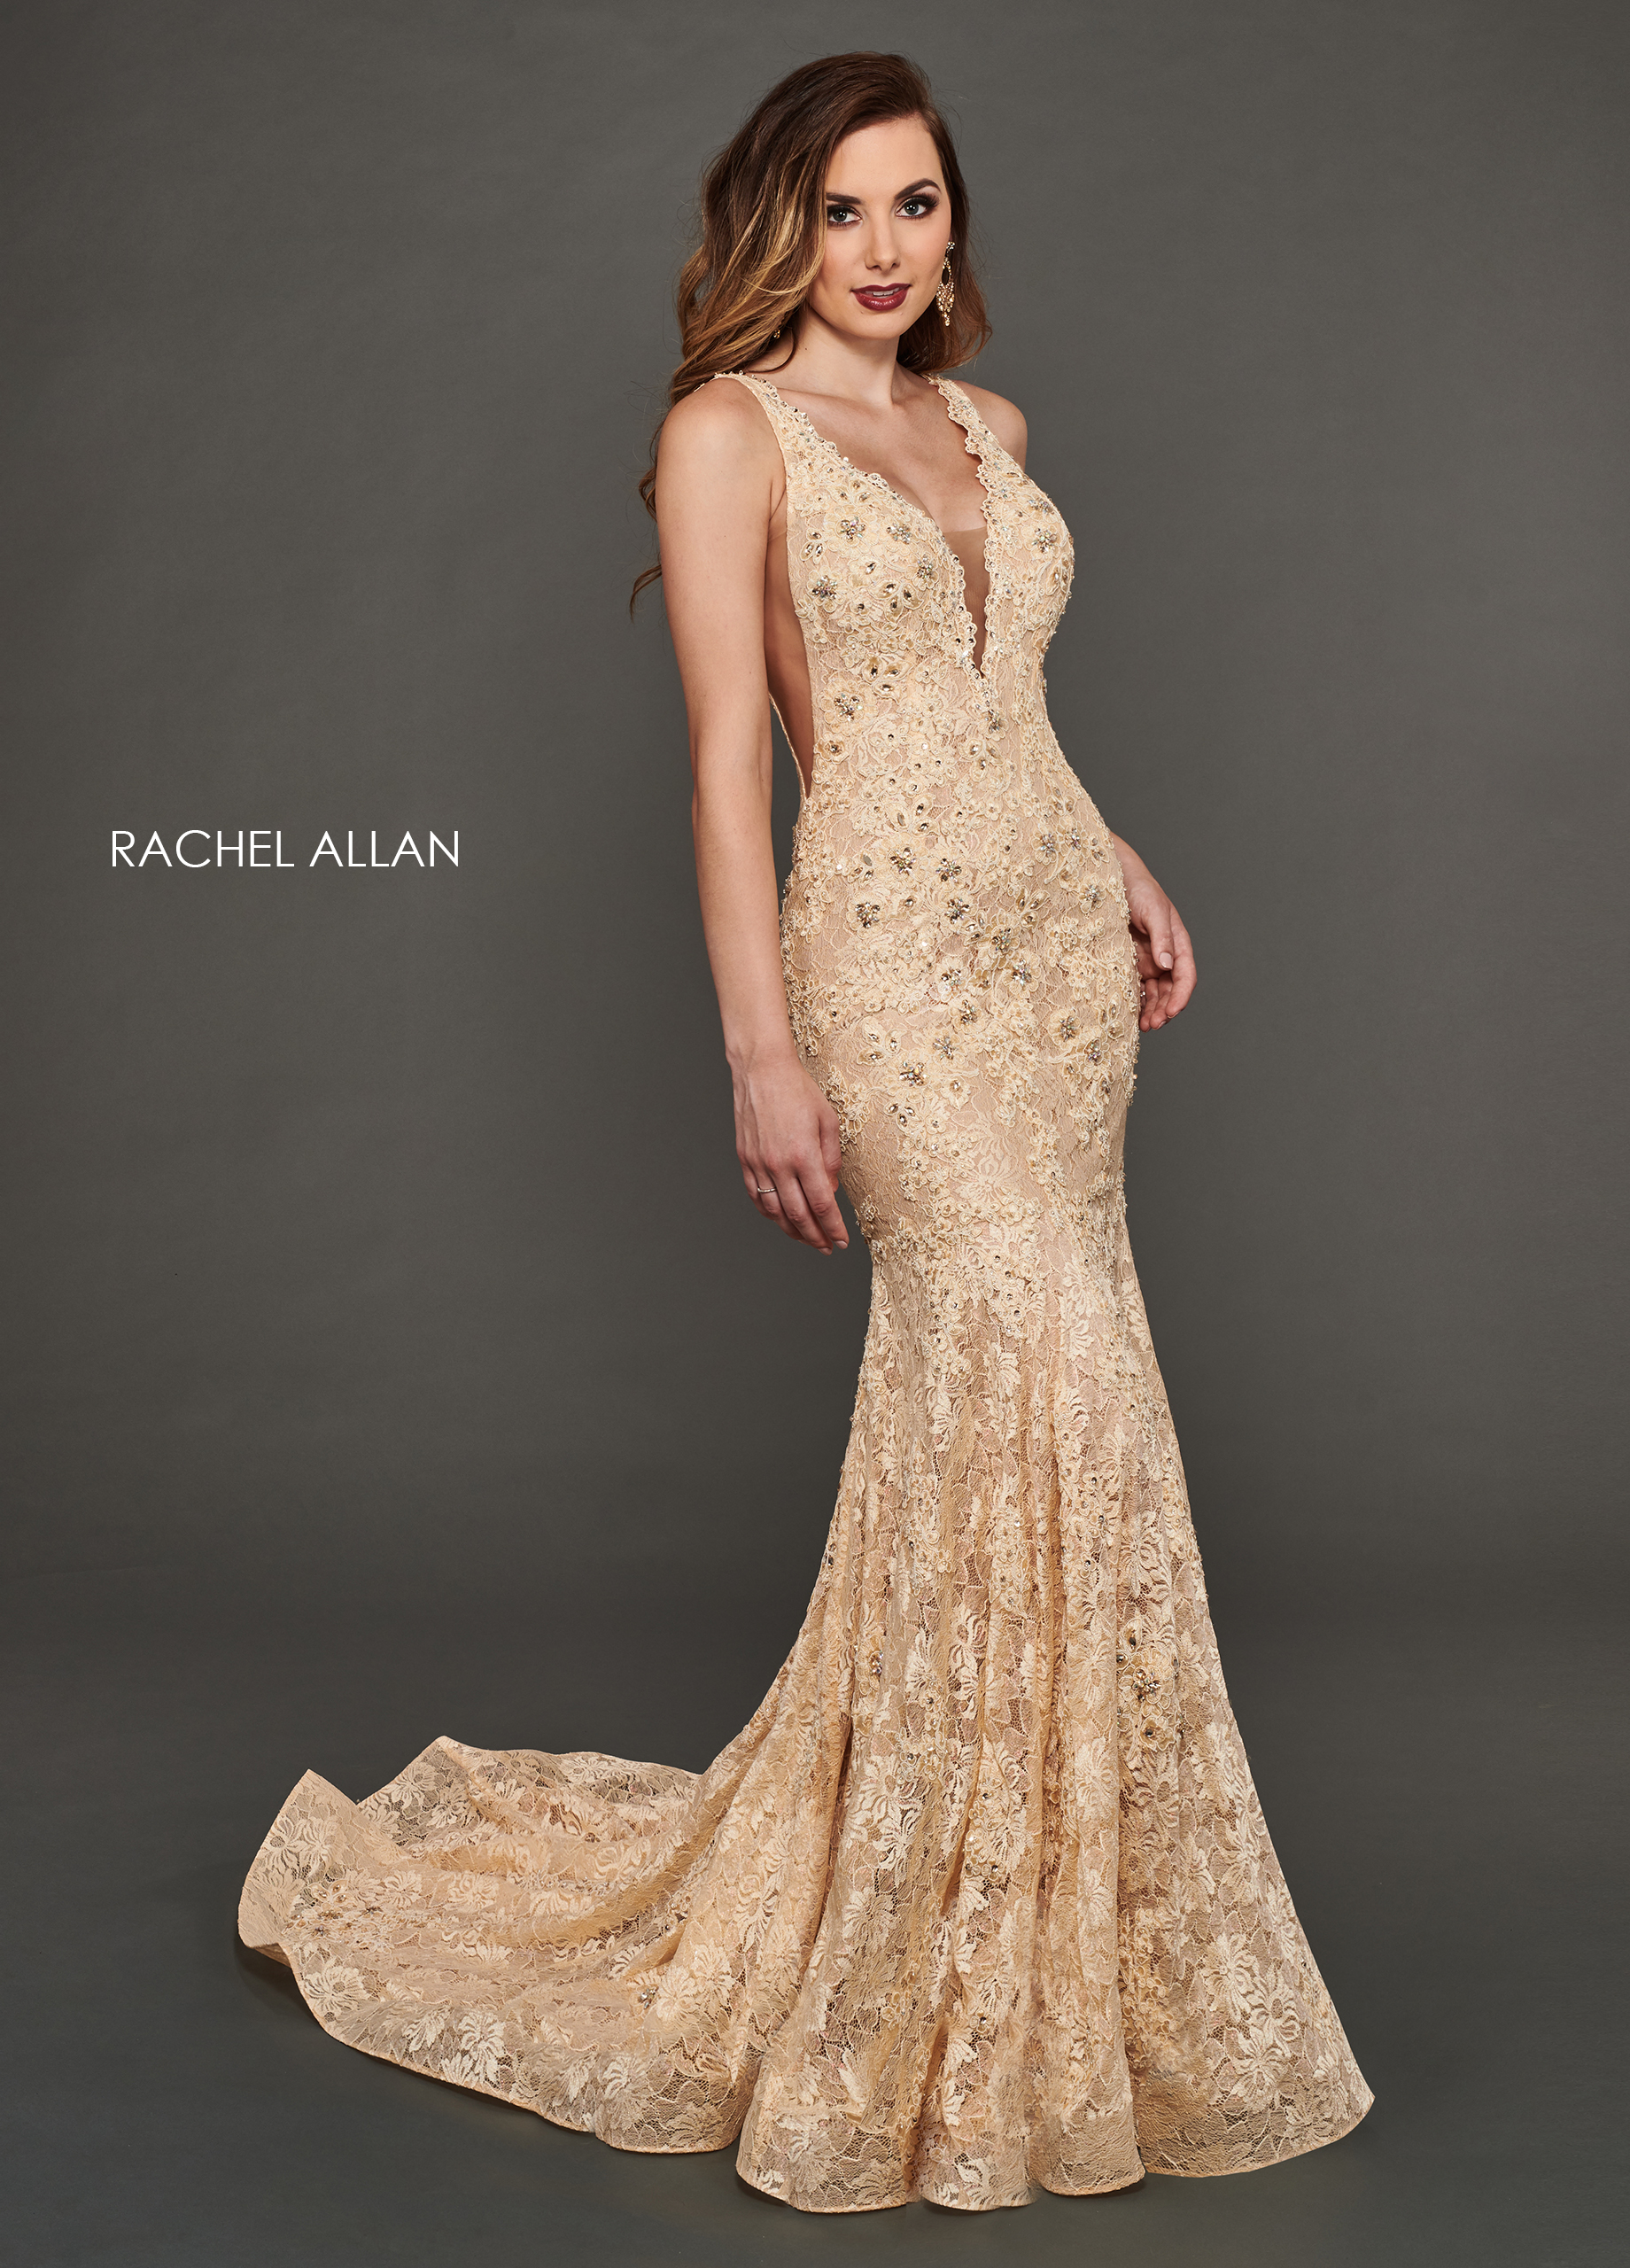 V-Neck Fit & Flare Couture Dresses in Champagne Color